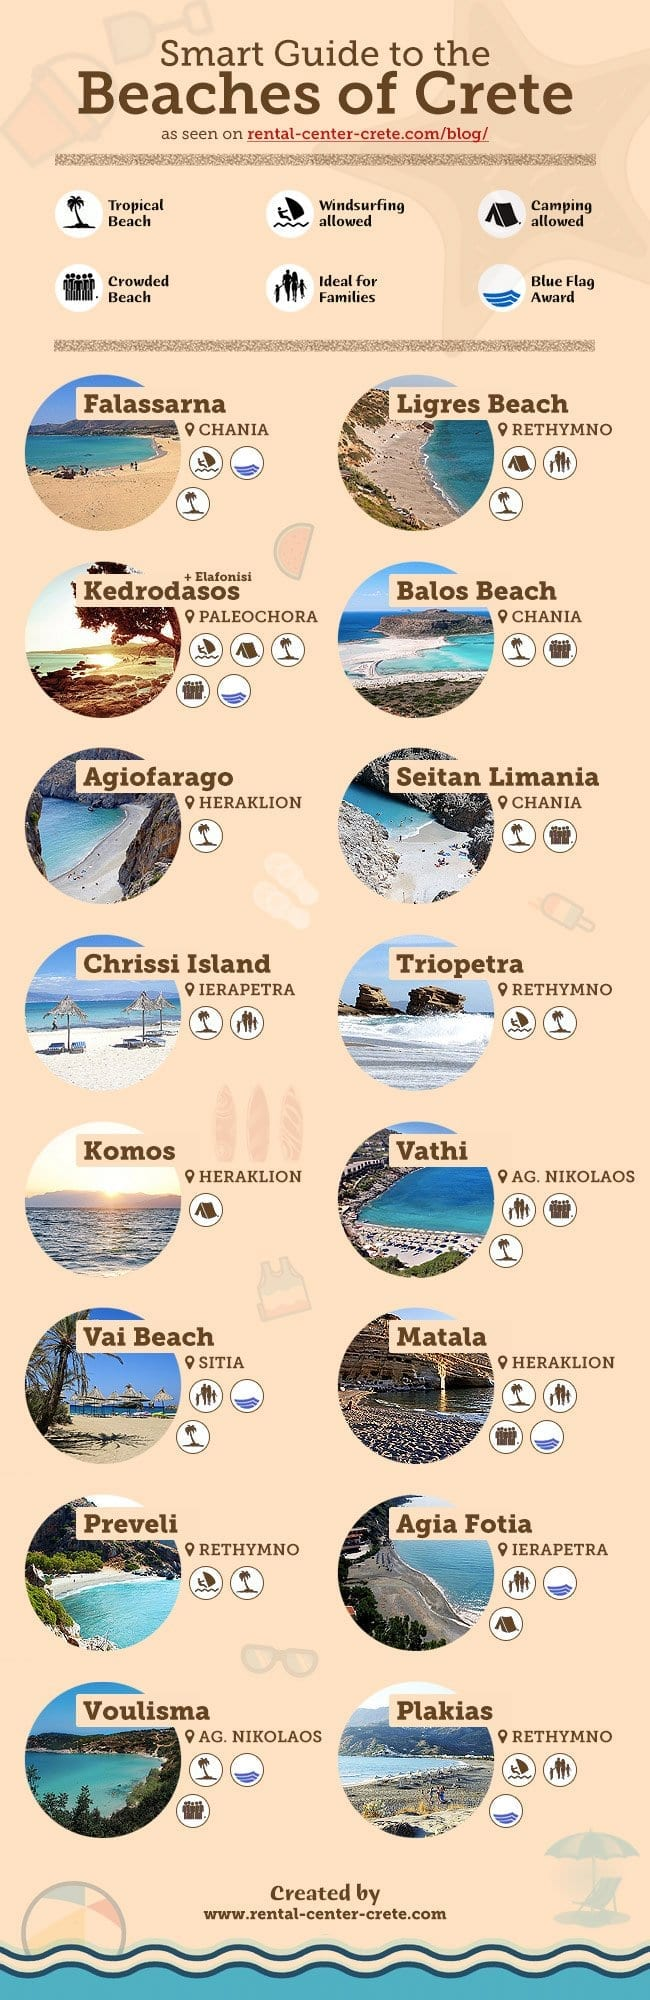 Smart Guide to the Beaches of Crete - Infographic